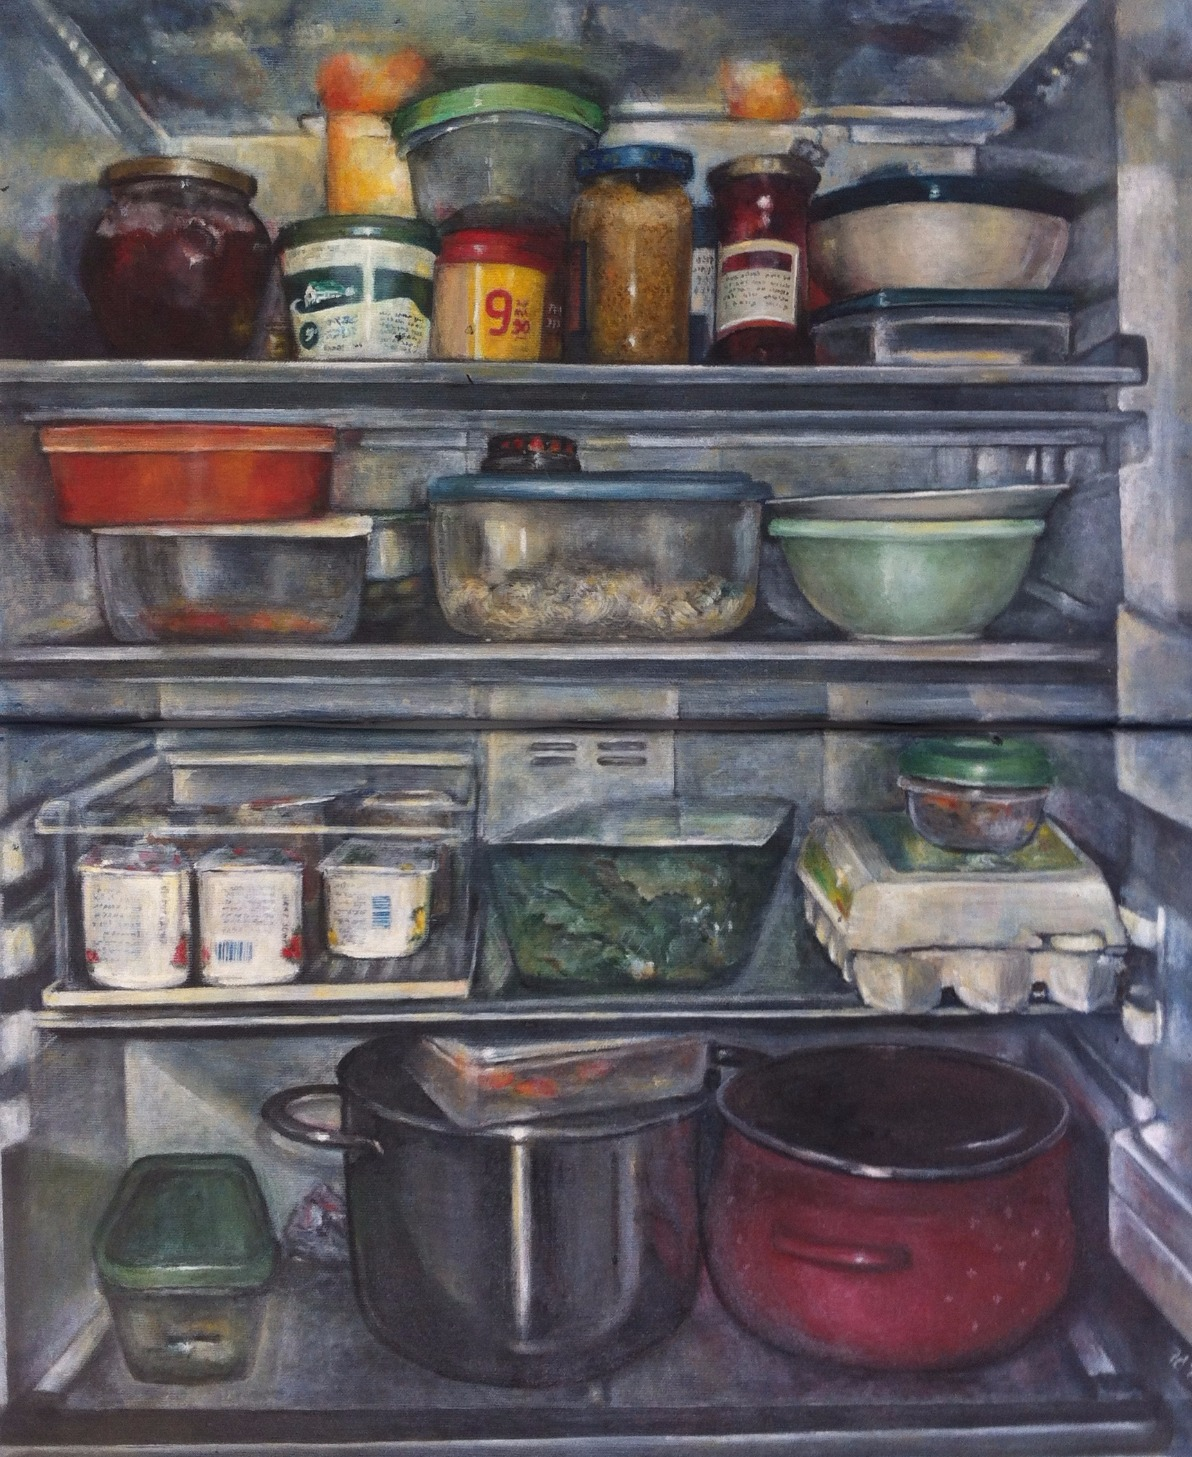 oil on canvas, 2006, 60x50